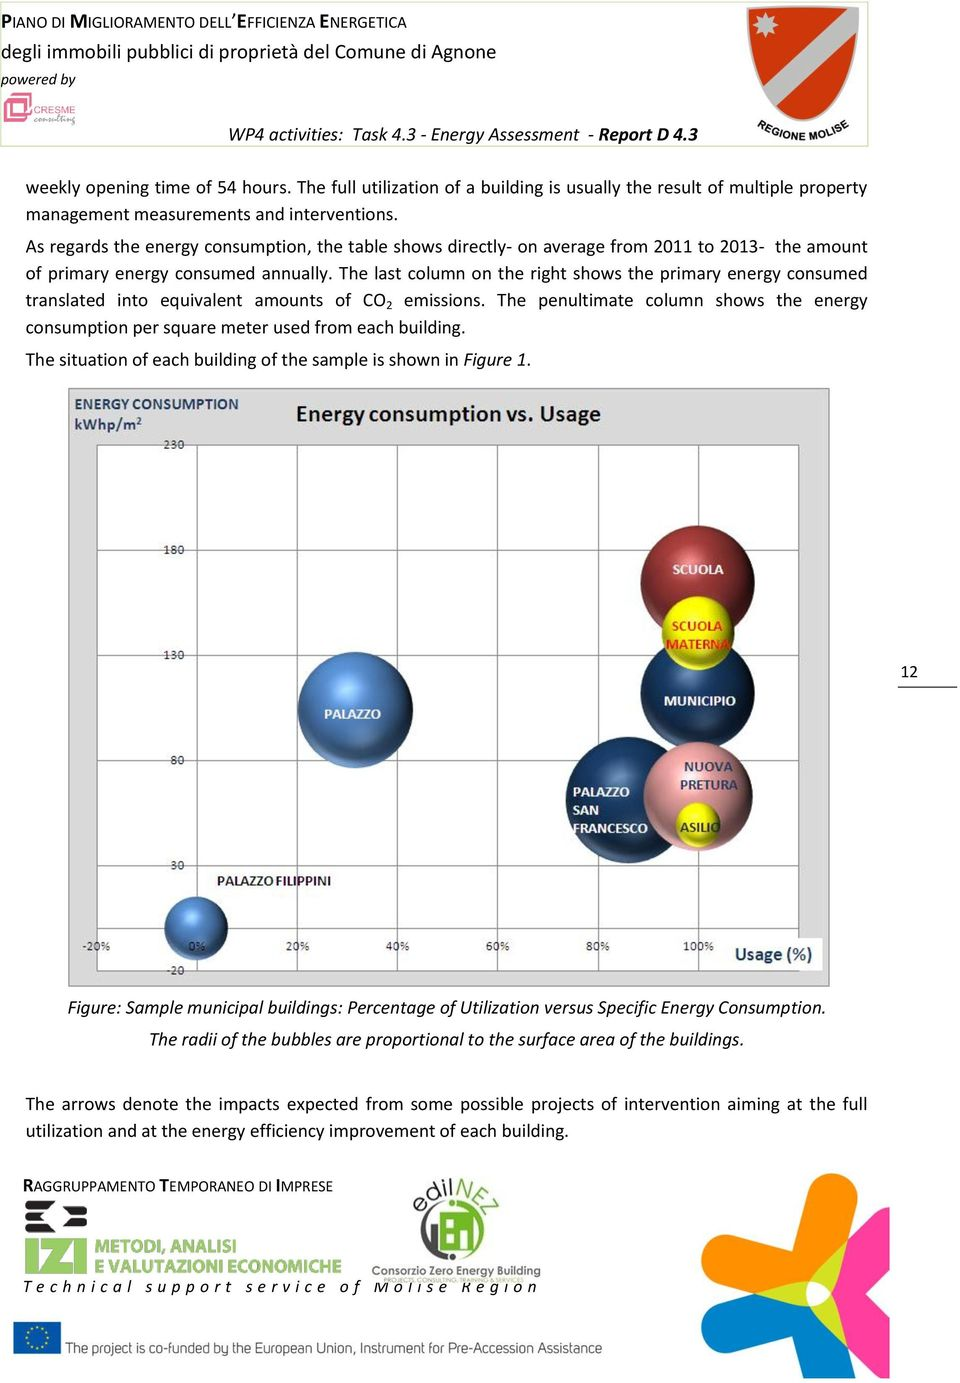 The last column on the right shows the primary energy consumed translated into equivalent amounts of CO 2 emissions.